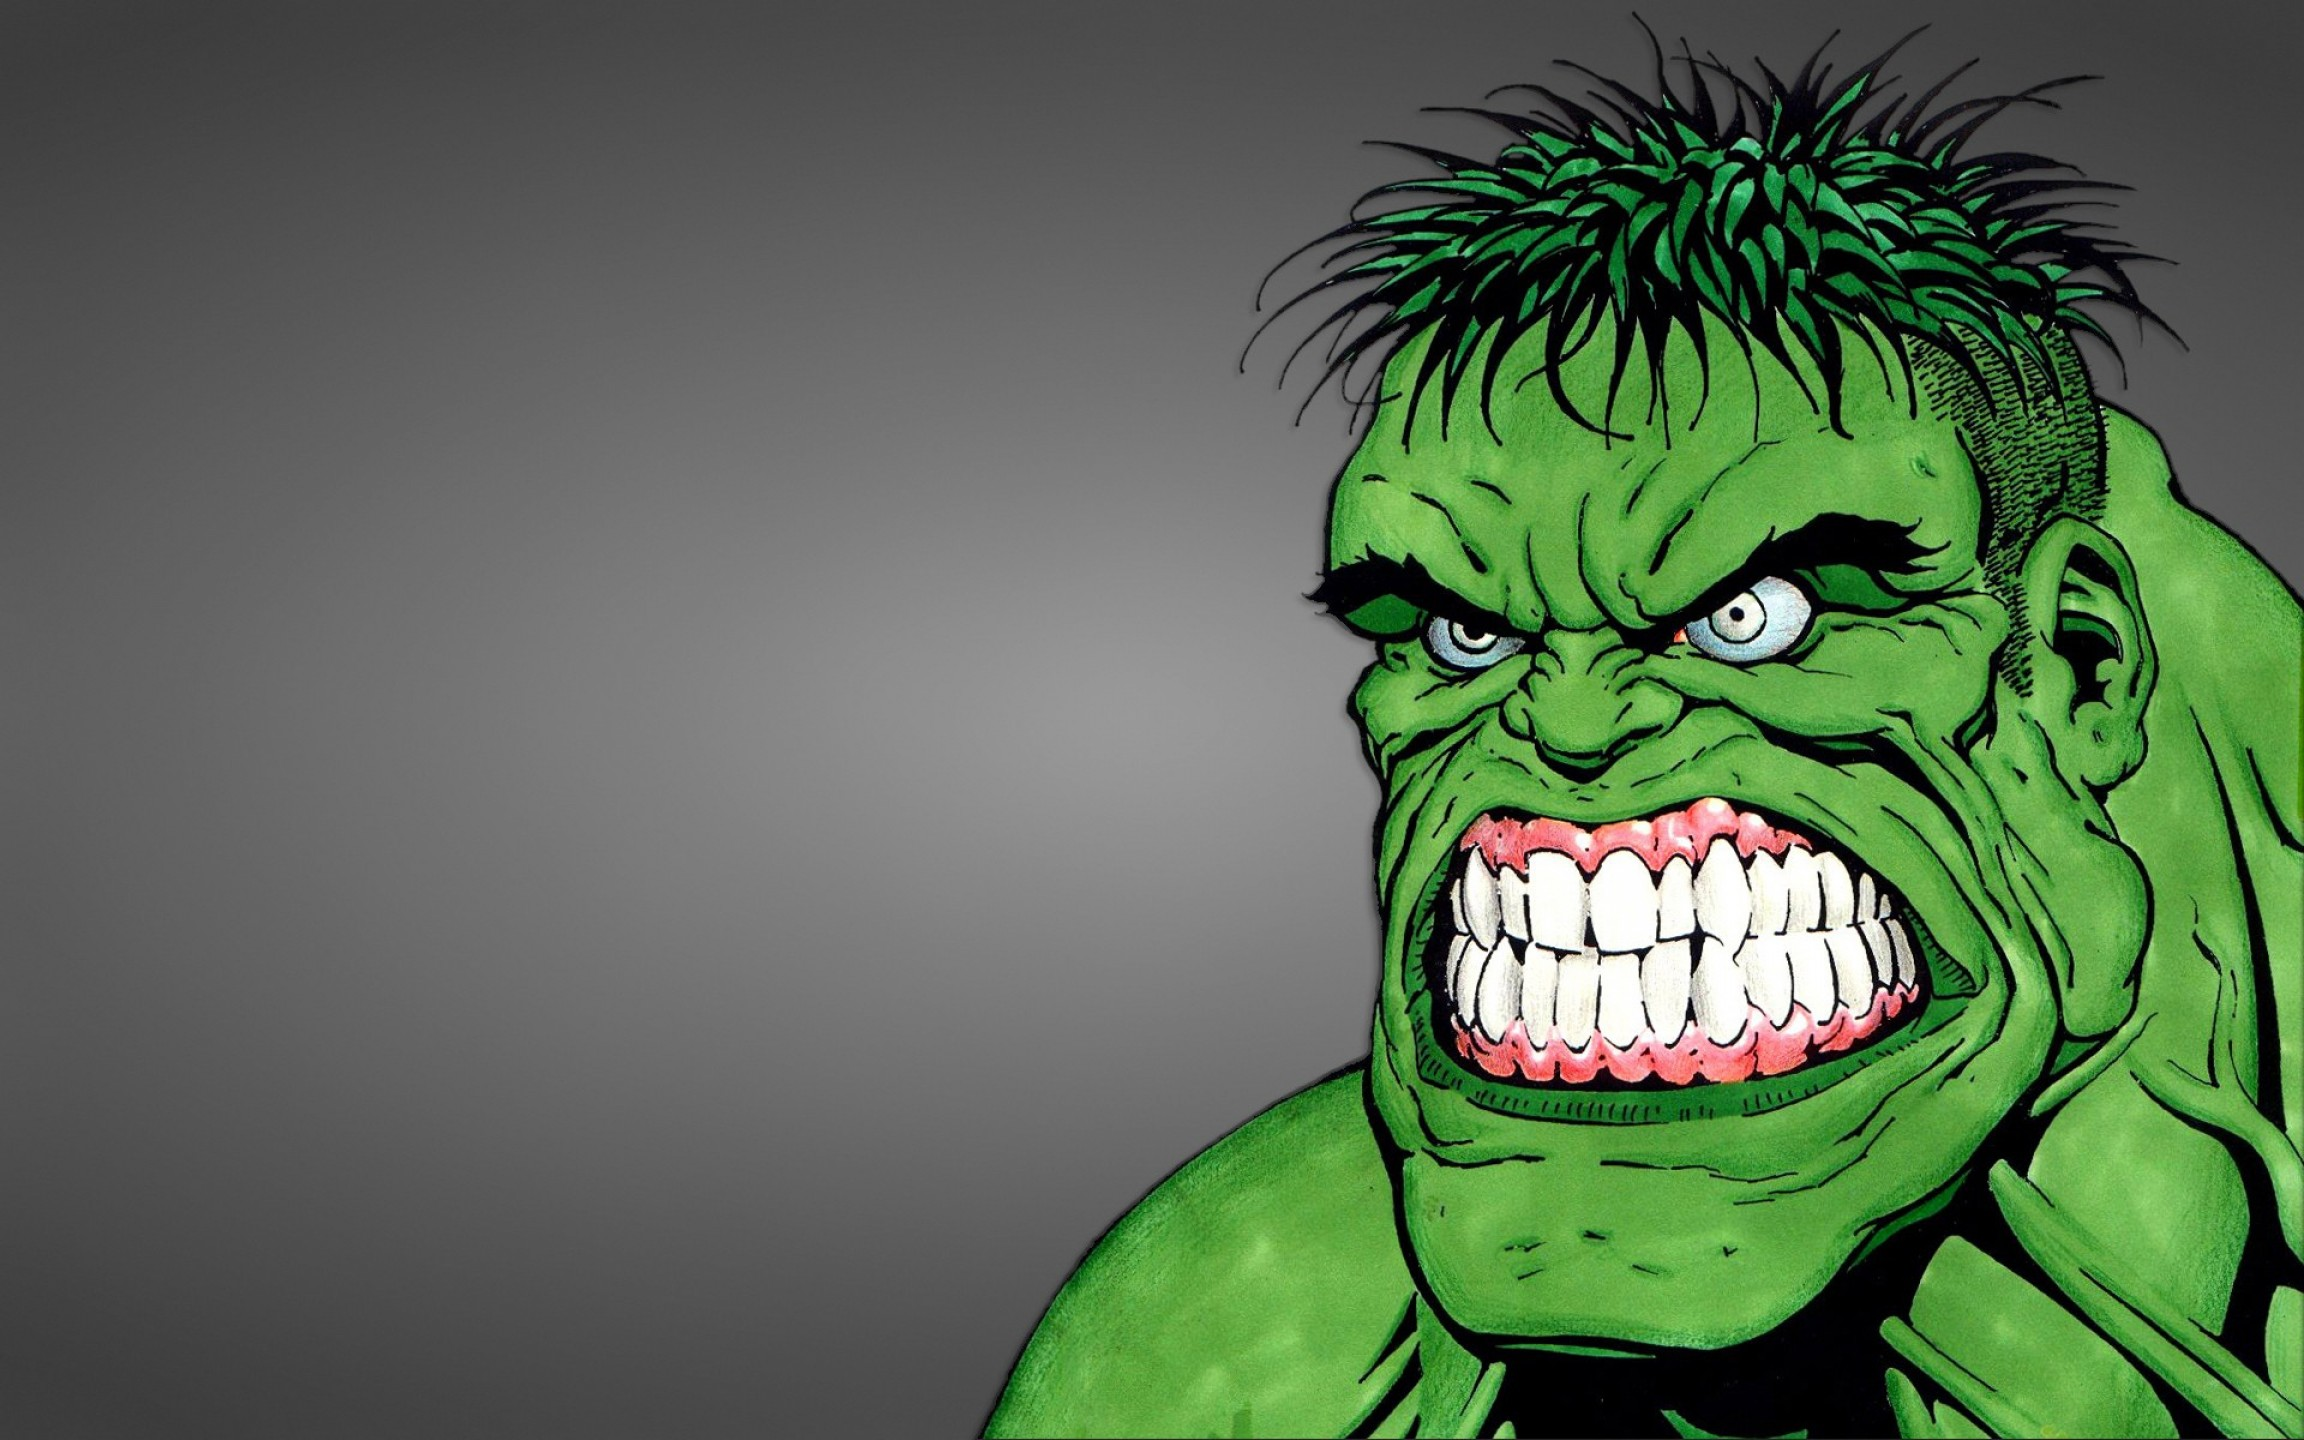 Hulk Origional Vectors: Hulk Hulk Angry Face Monster Wide